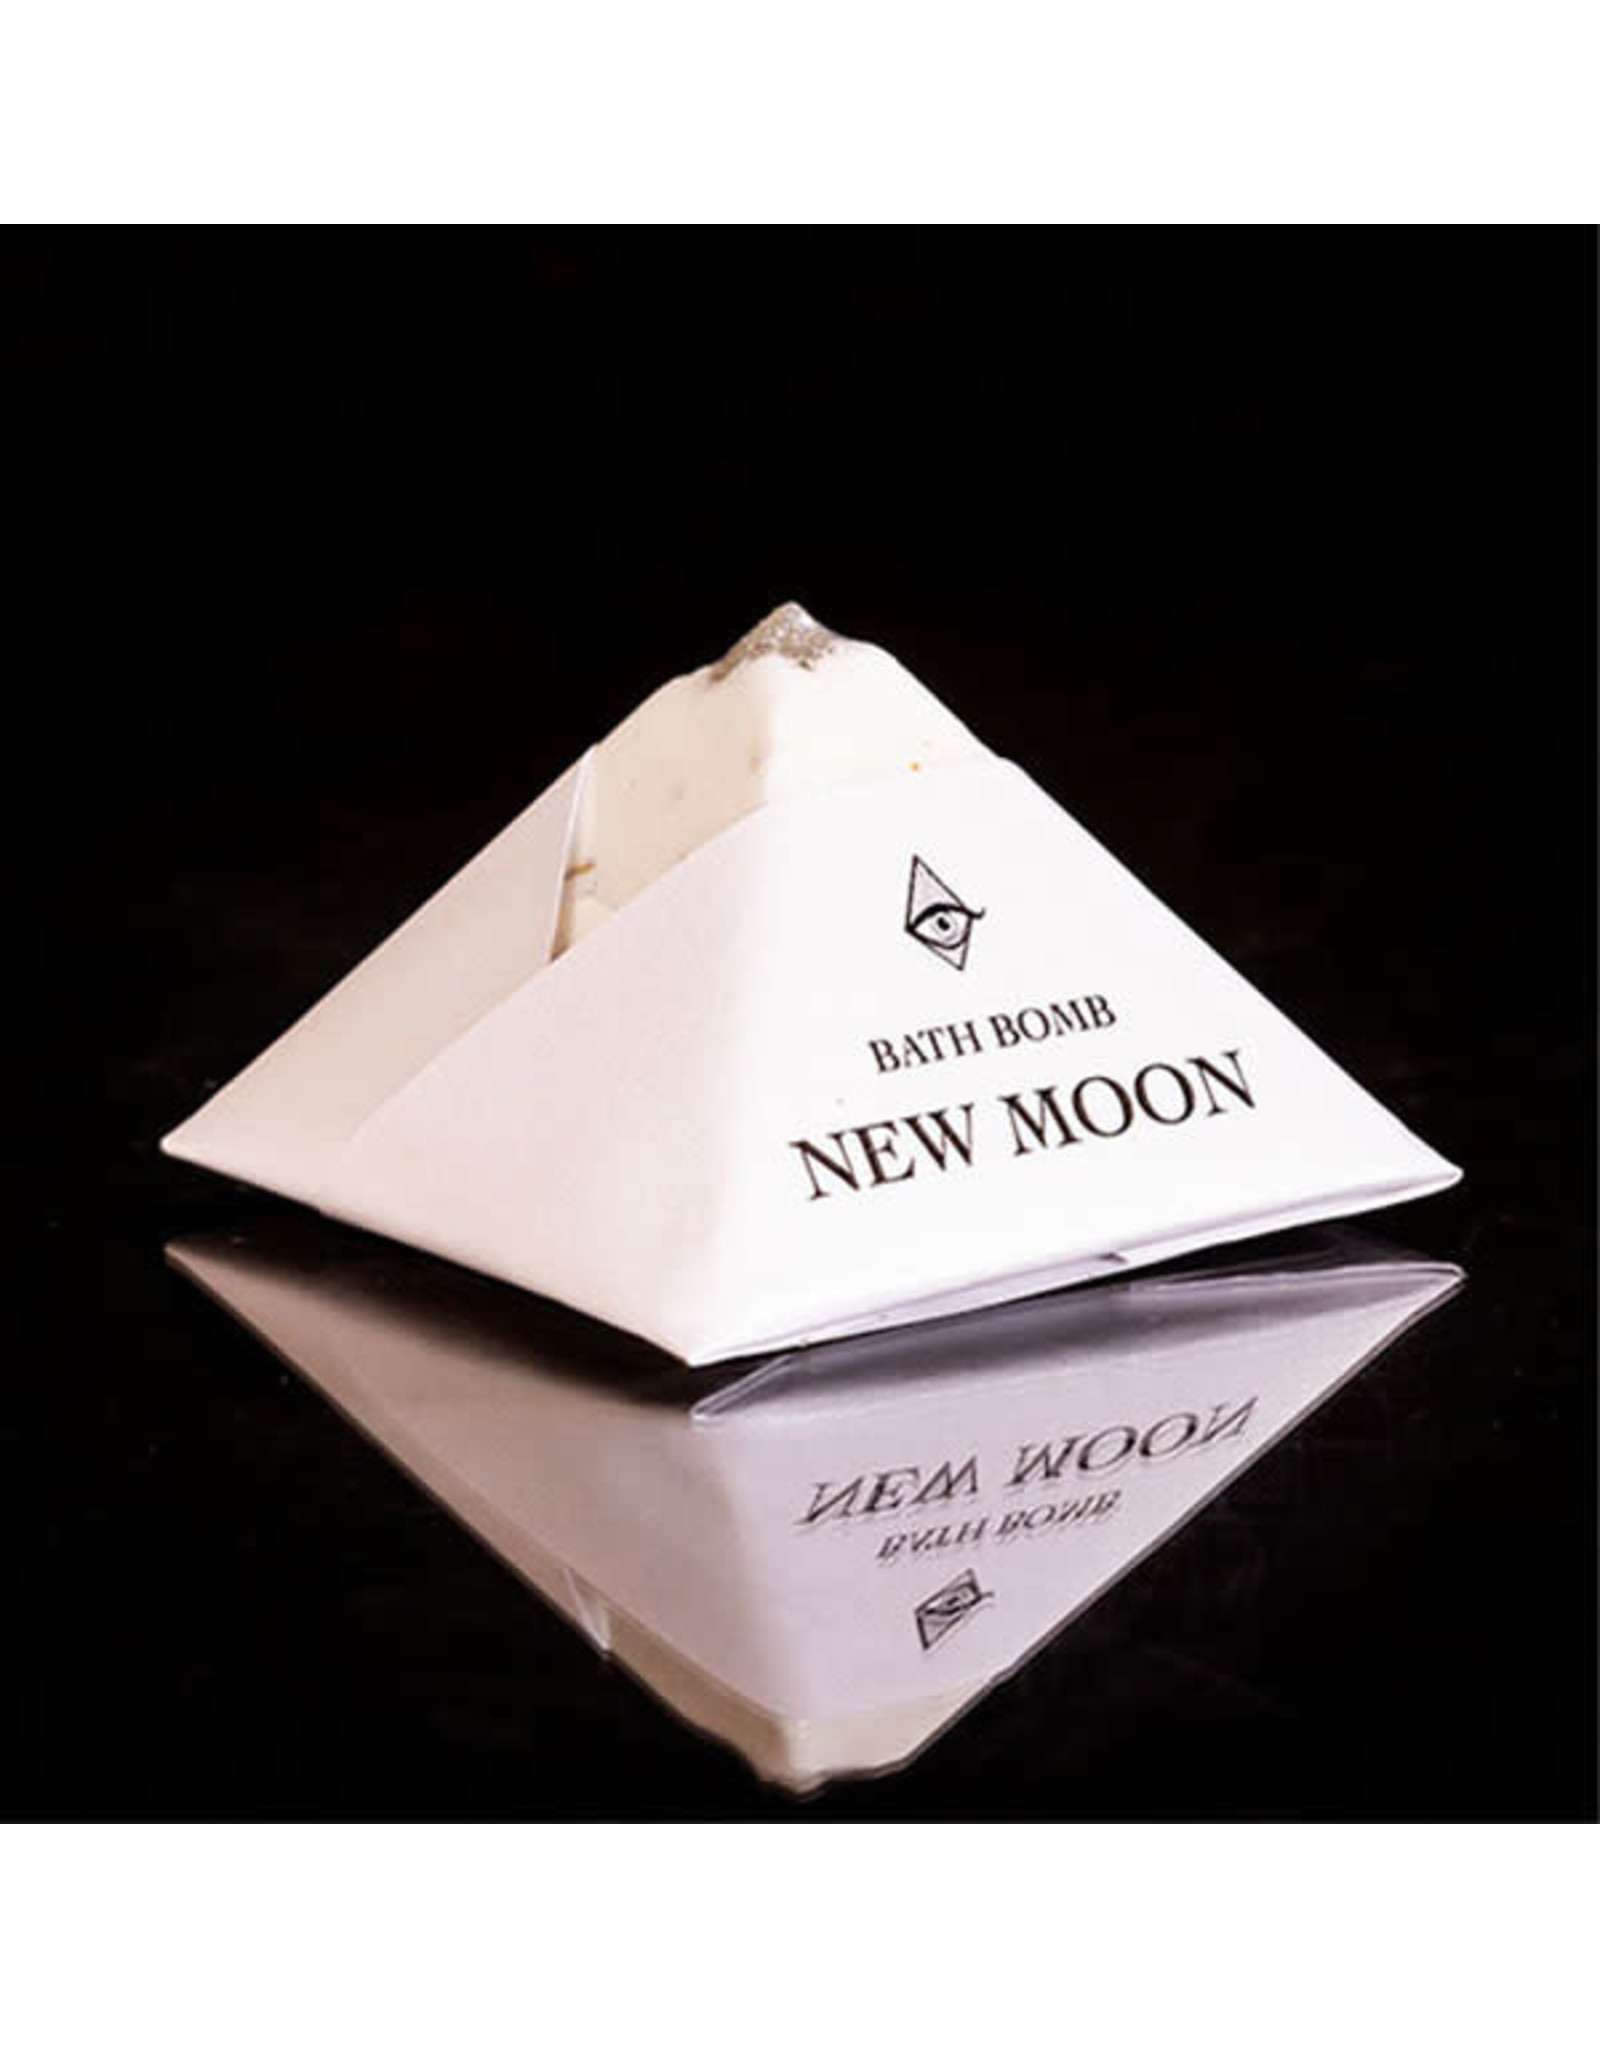 New Moon - Bath Bomb